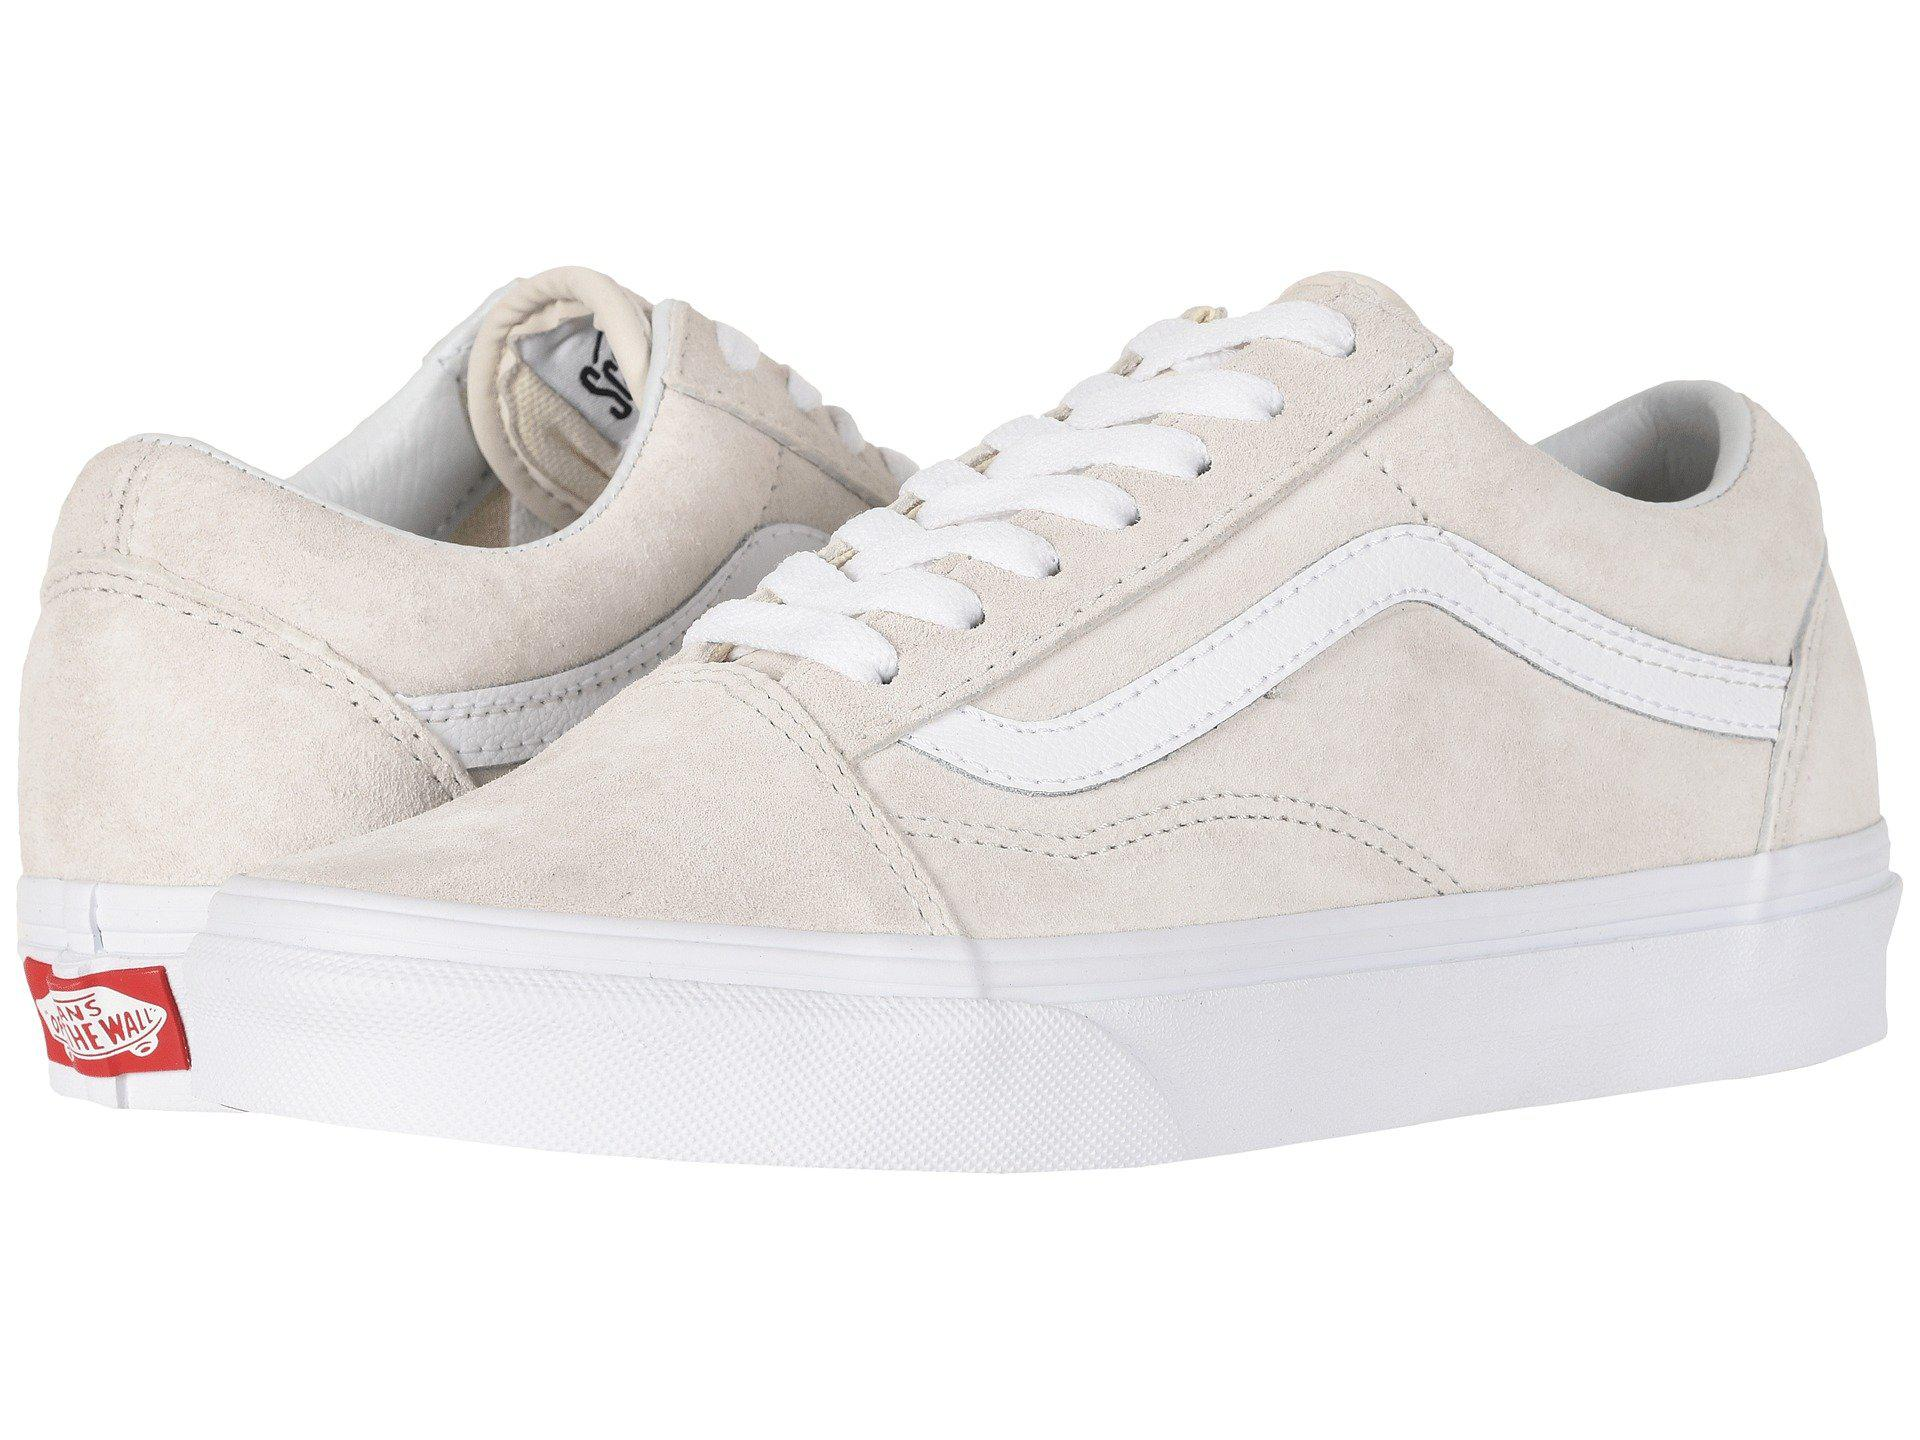 c82df8f8db Skate Outsole Lyst Vans In Skooltm White Old Alloyblack gum Shoes wBpYqaC